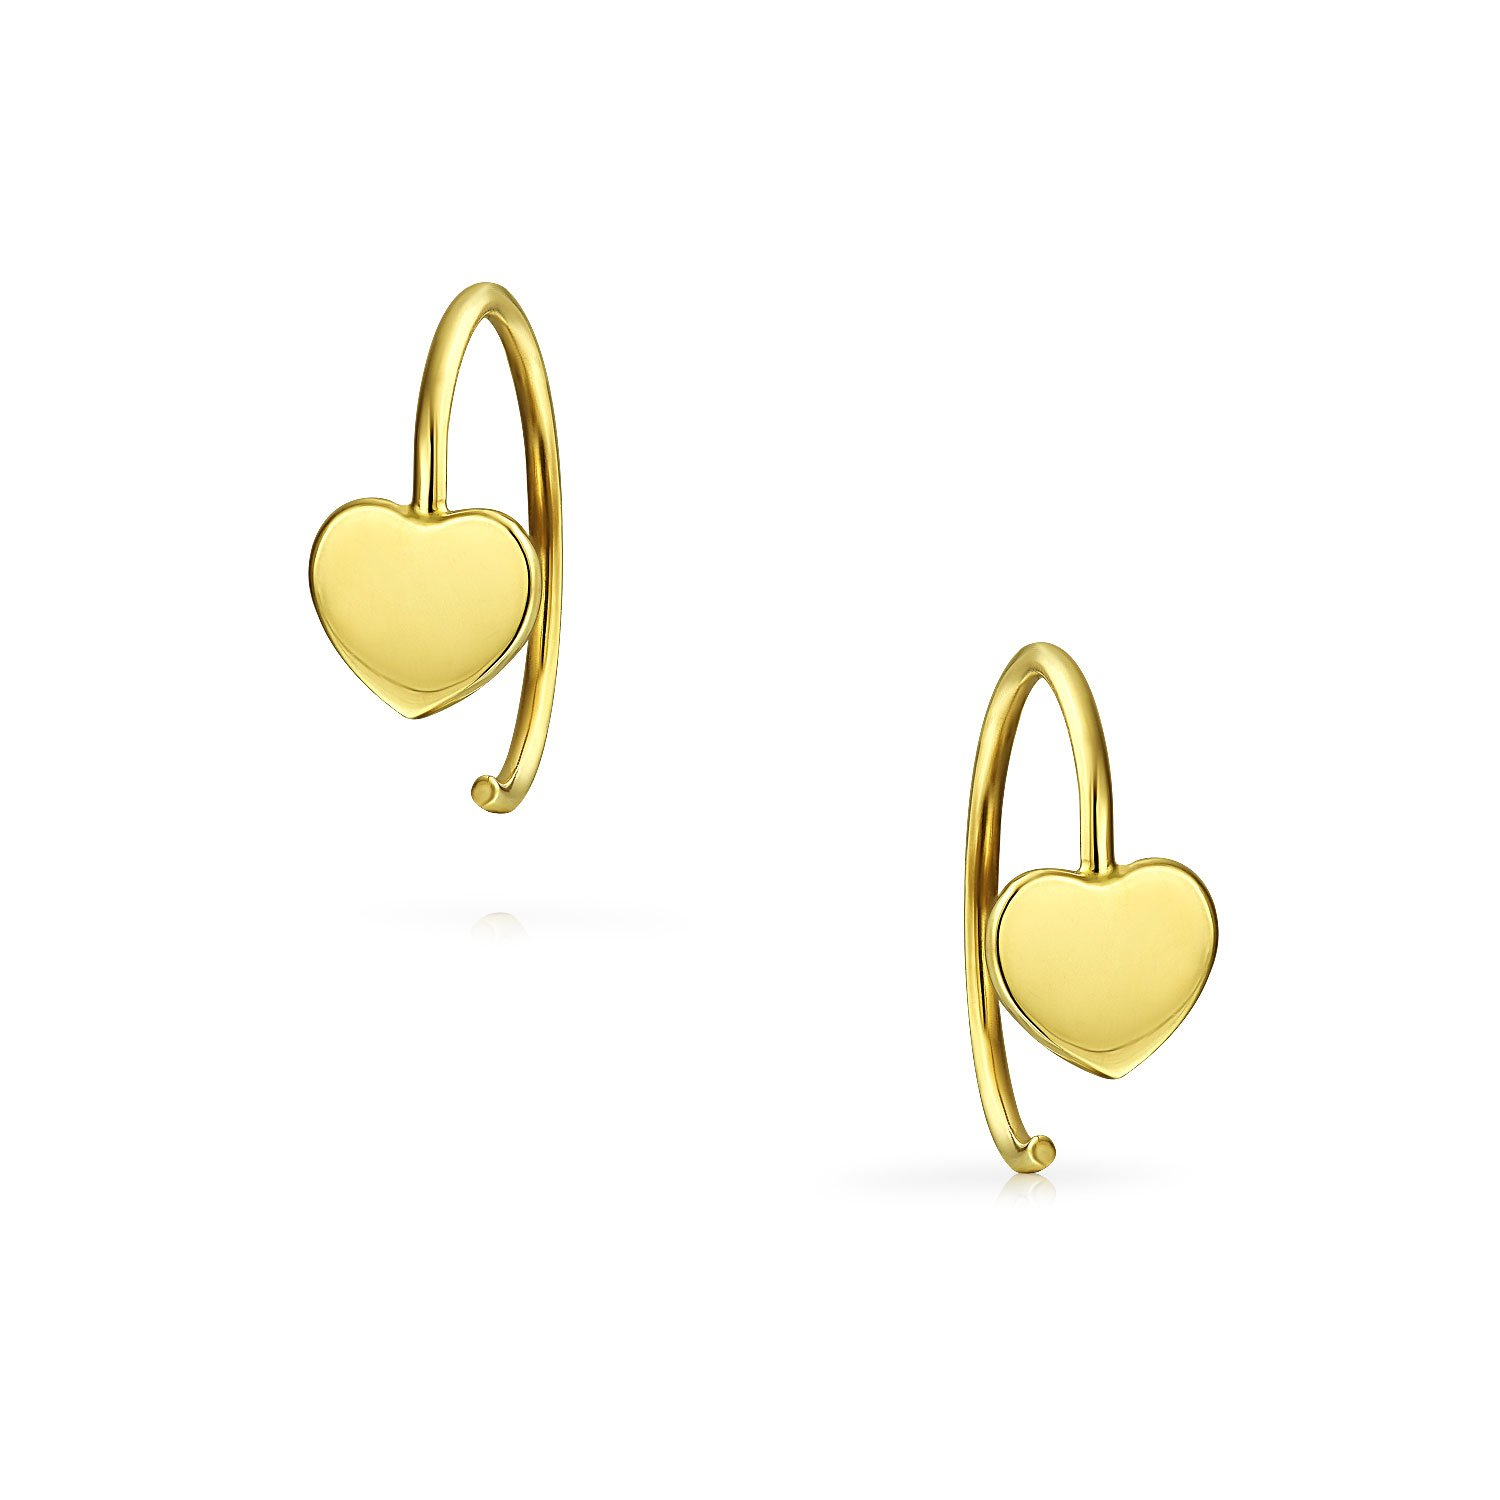 Tiny Minimalist Heart Shaped Threader Earrings For Women For Teen For Girlfriend 14K Yellow Real Gold Personalize